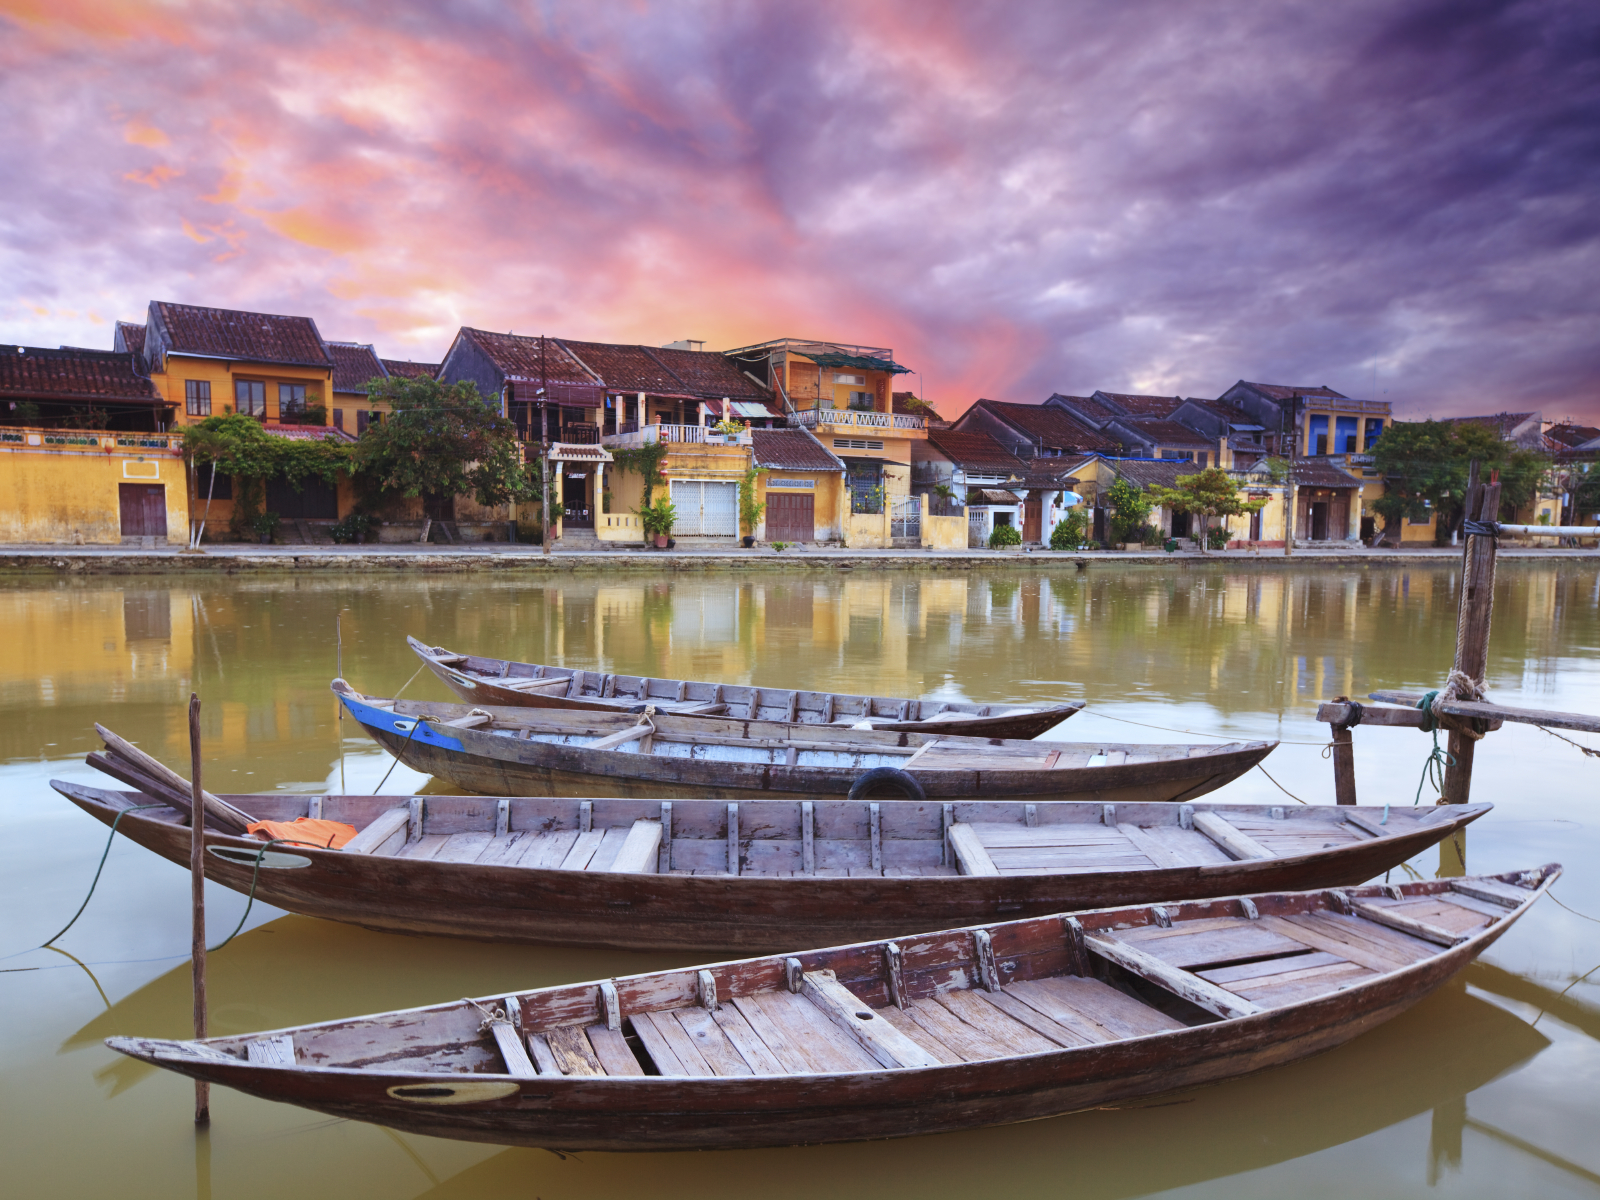 Hoi An Tours: the full complement of tour options from Hoi An